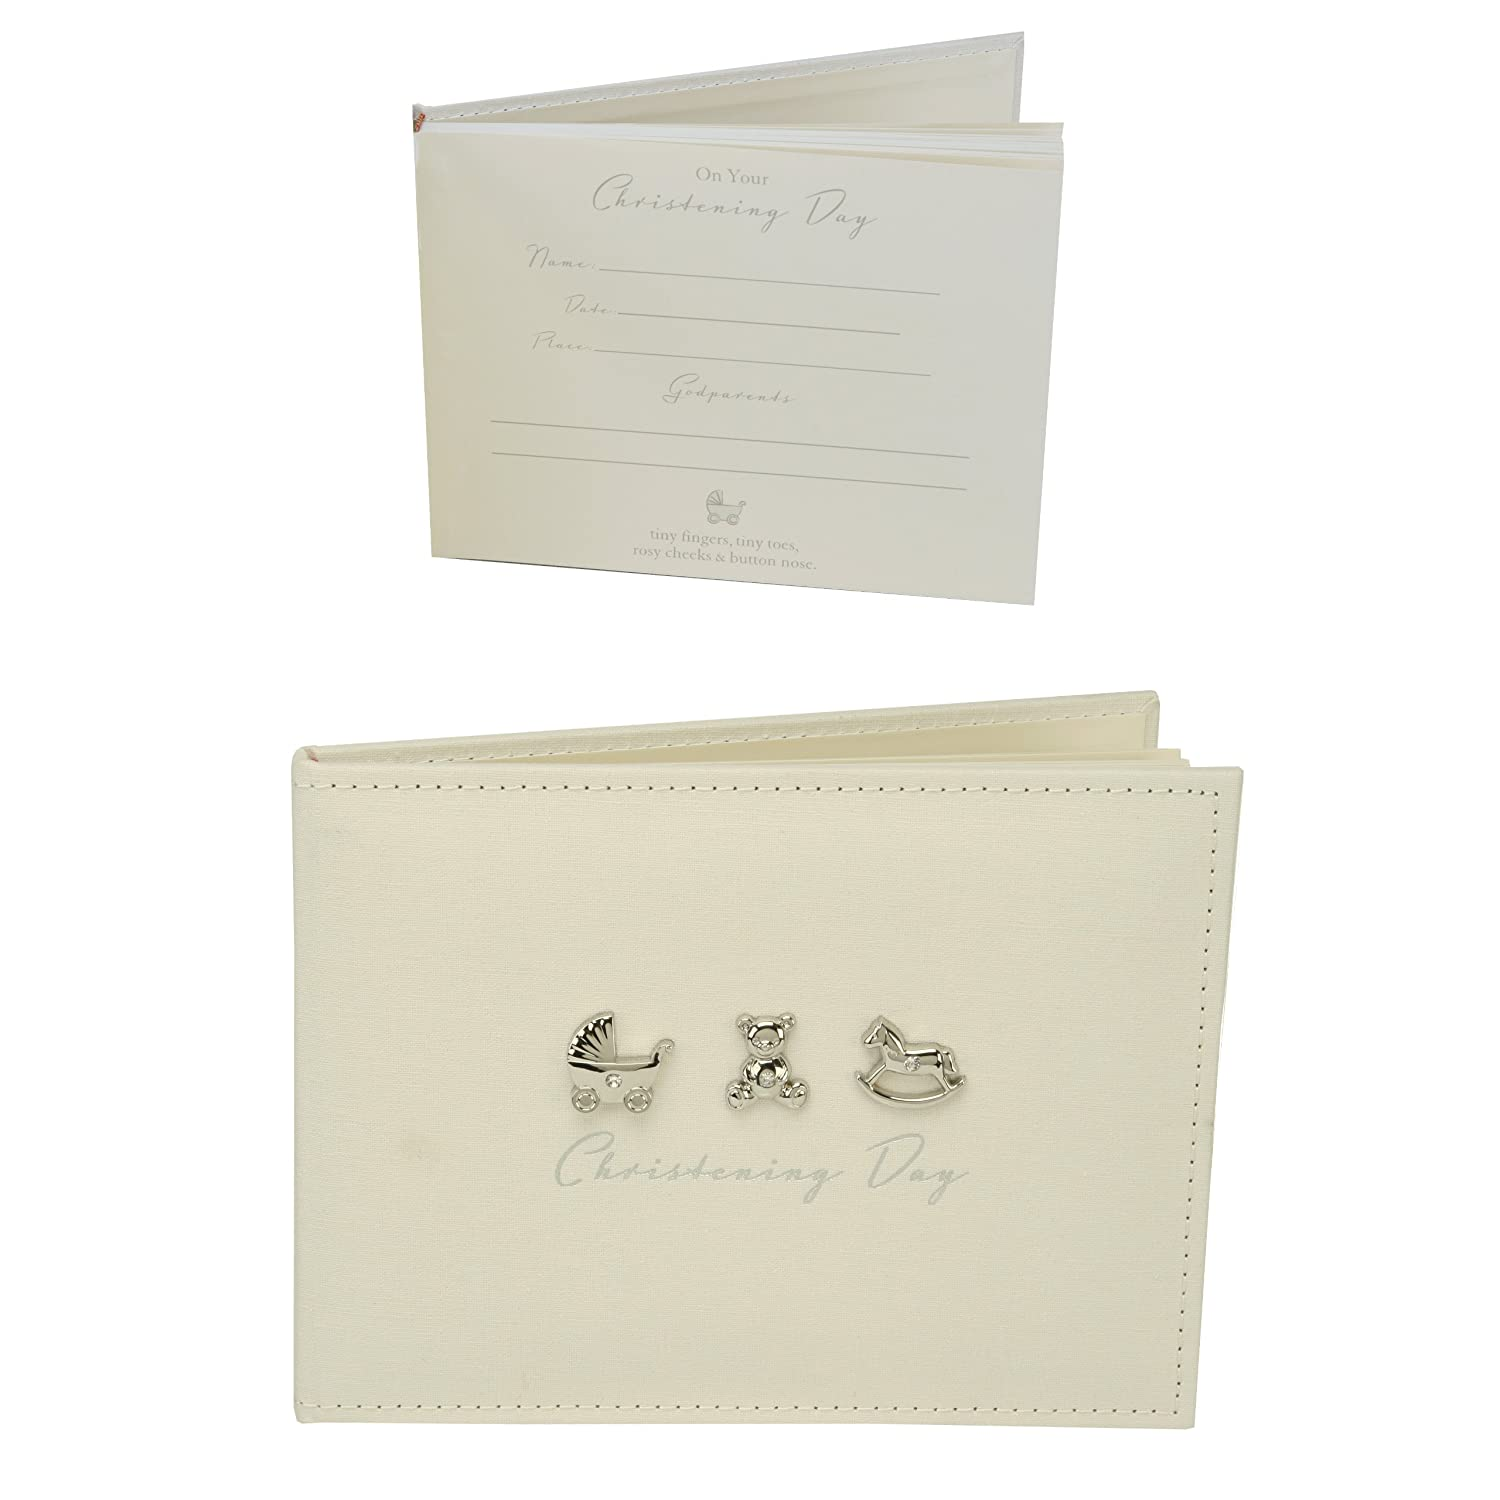 Christening Day Guest Book A1Gifts CG921